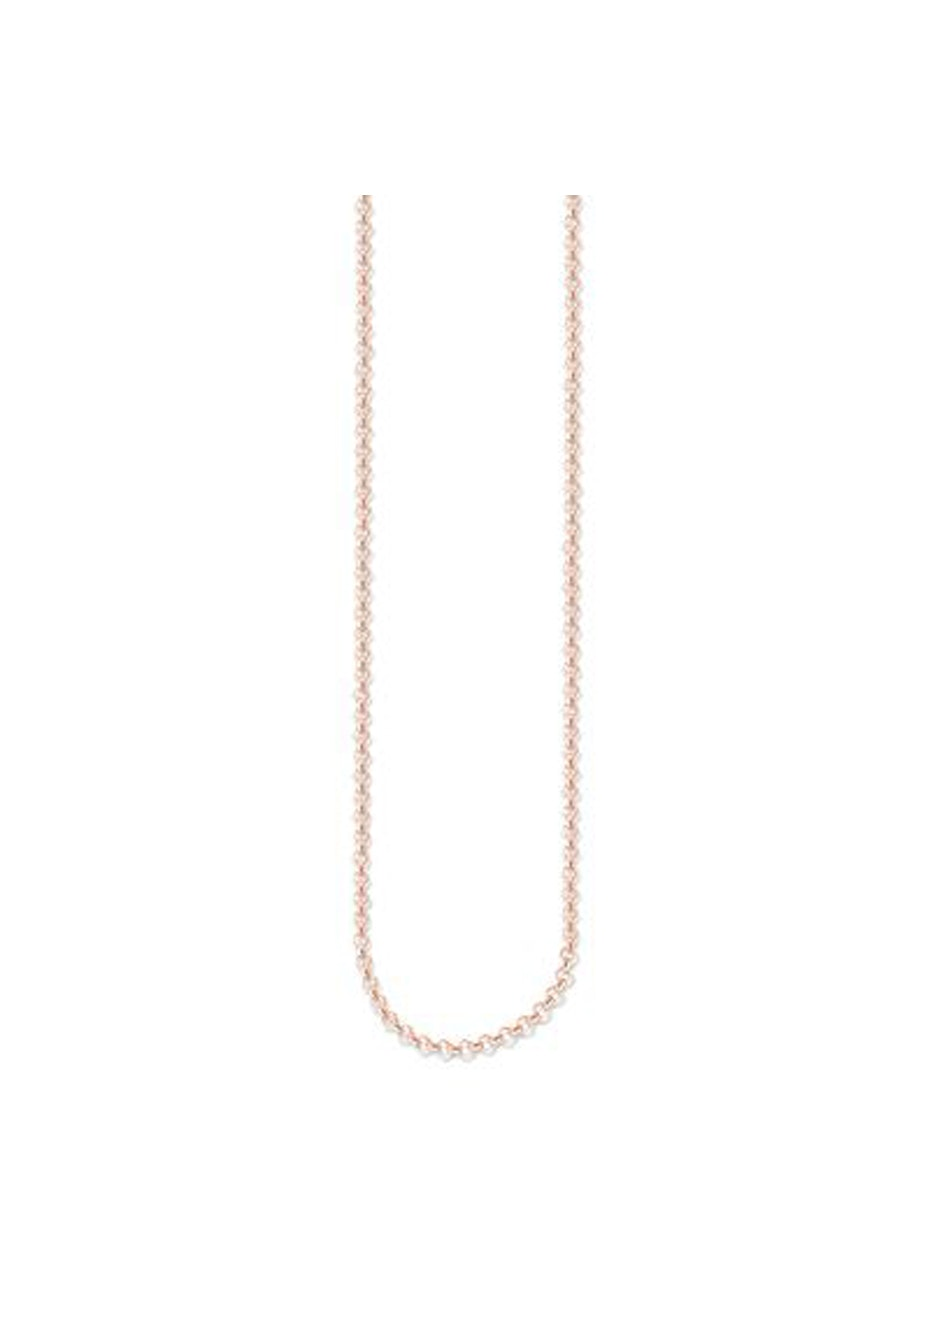 Thomas Sabo  - Fine Chain - Rose Gold Plated